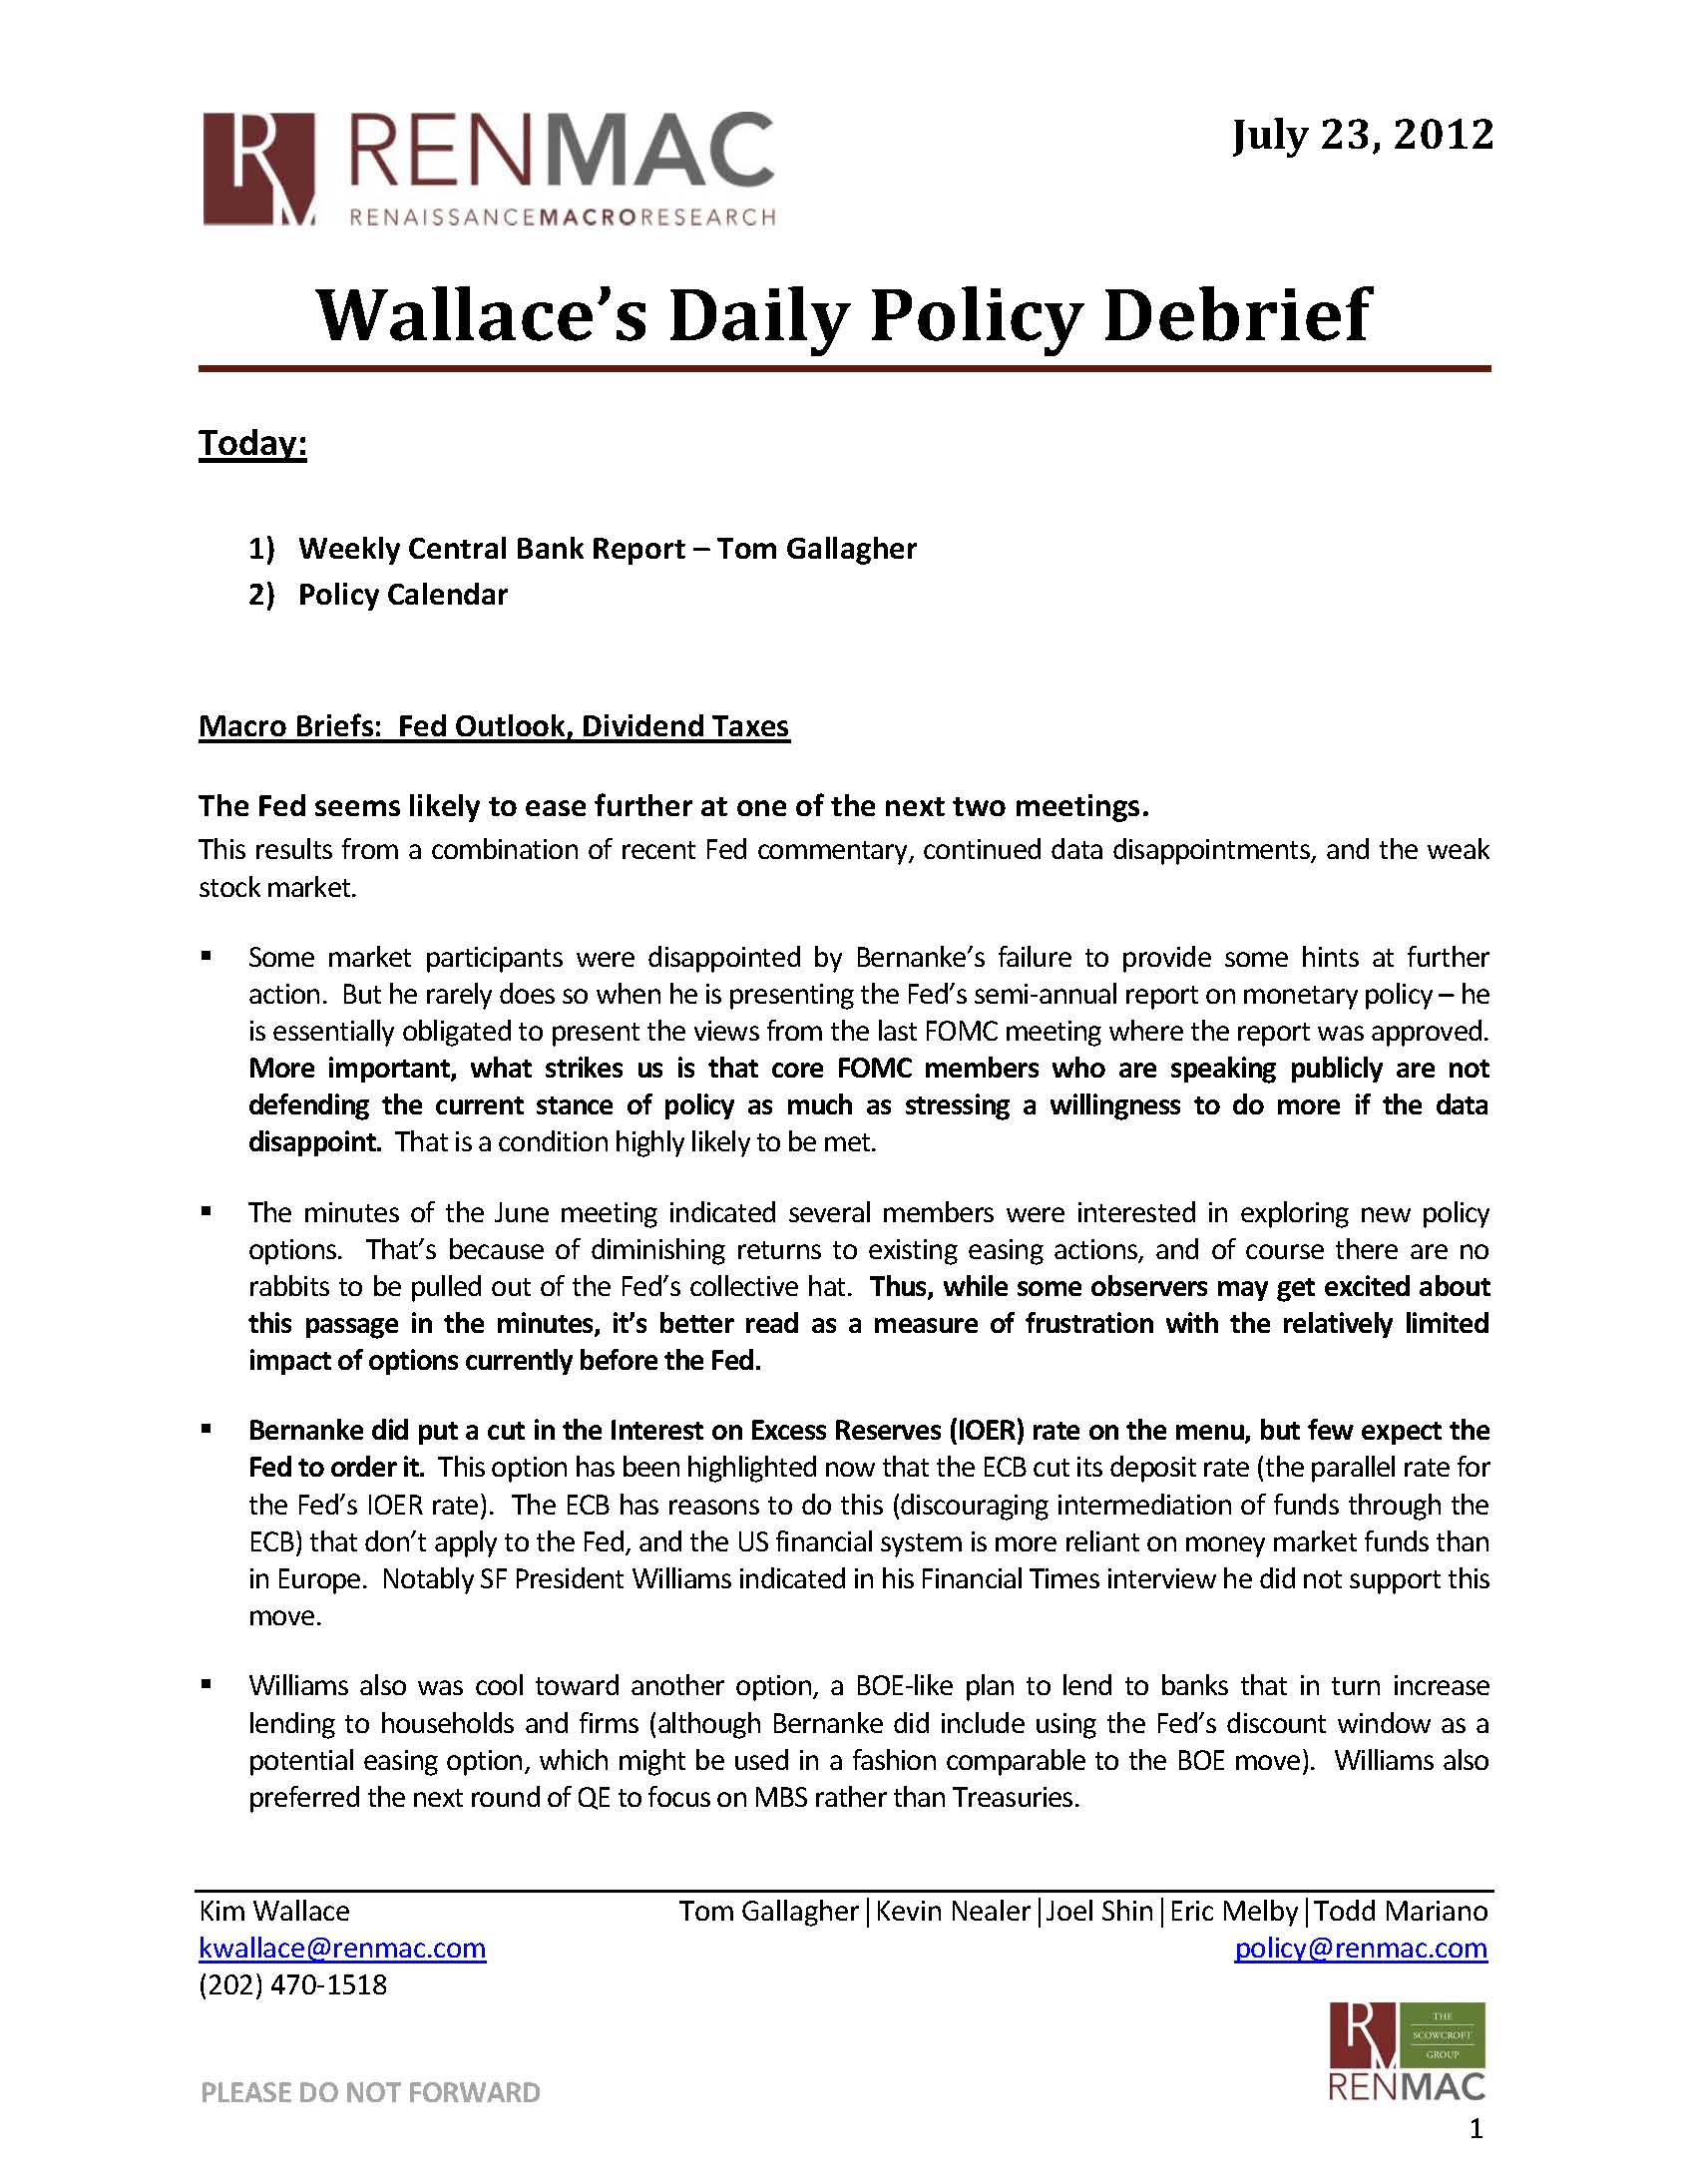 2012-07-23 WDPD_Page_1